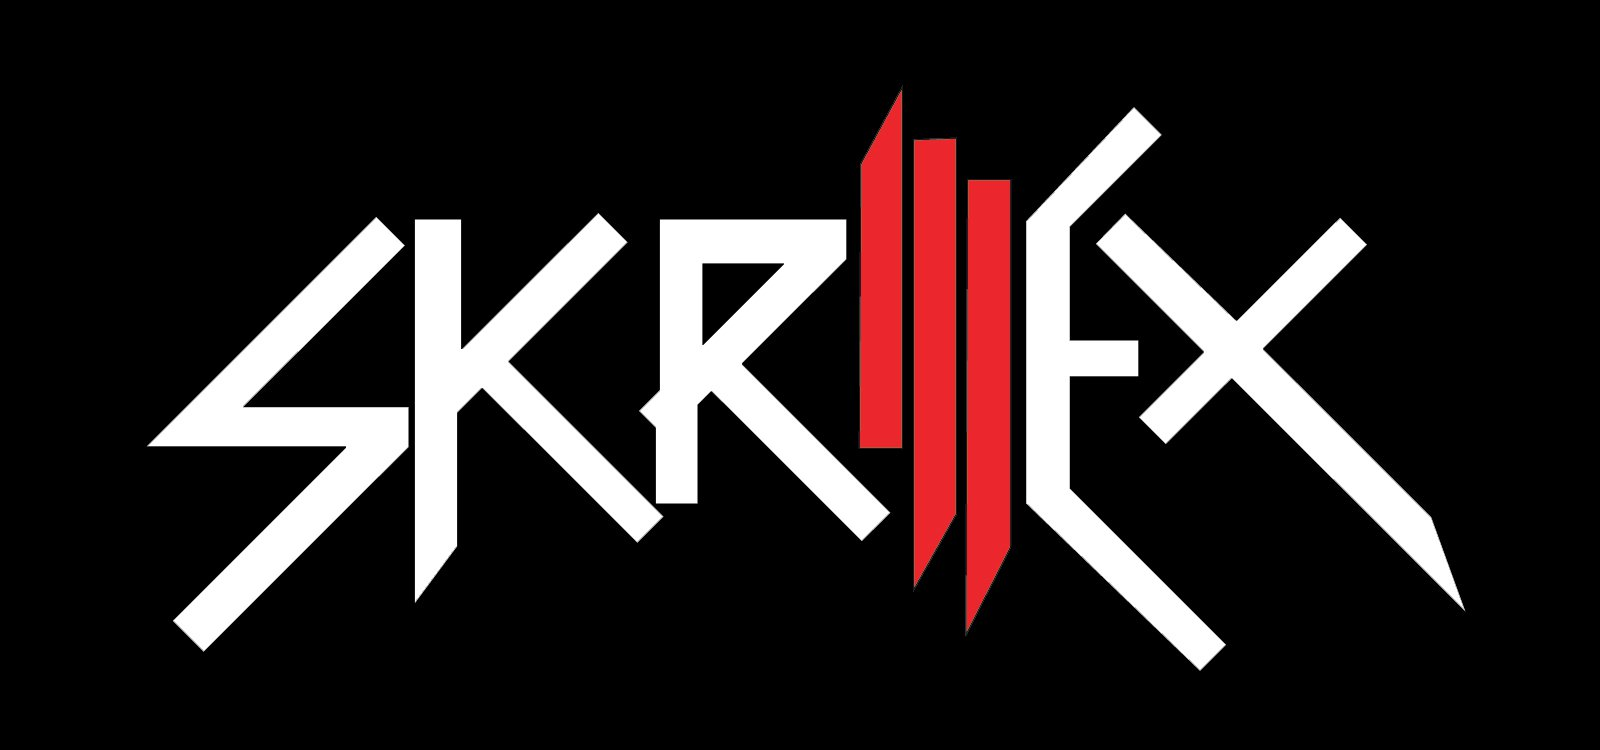 Skrillex Logo, Skrillex Symbol, Meaning, History and Evolution